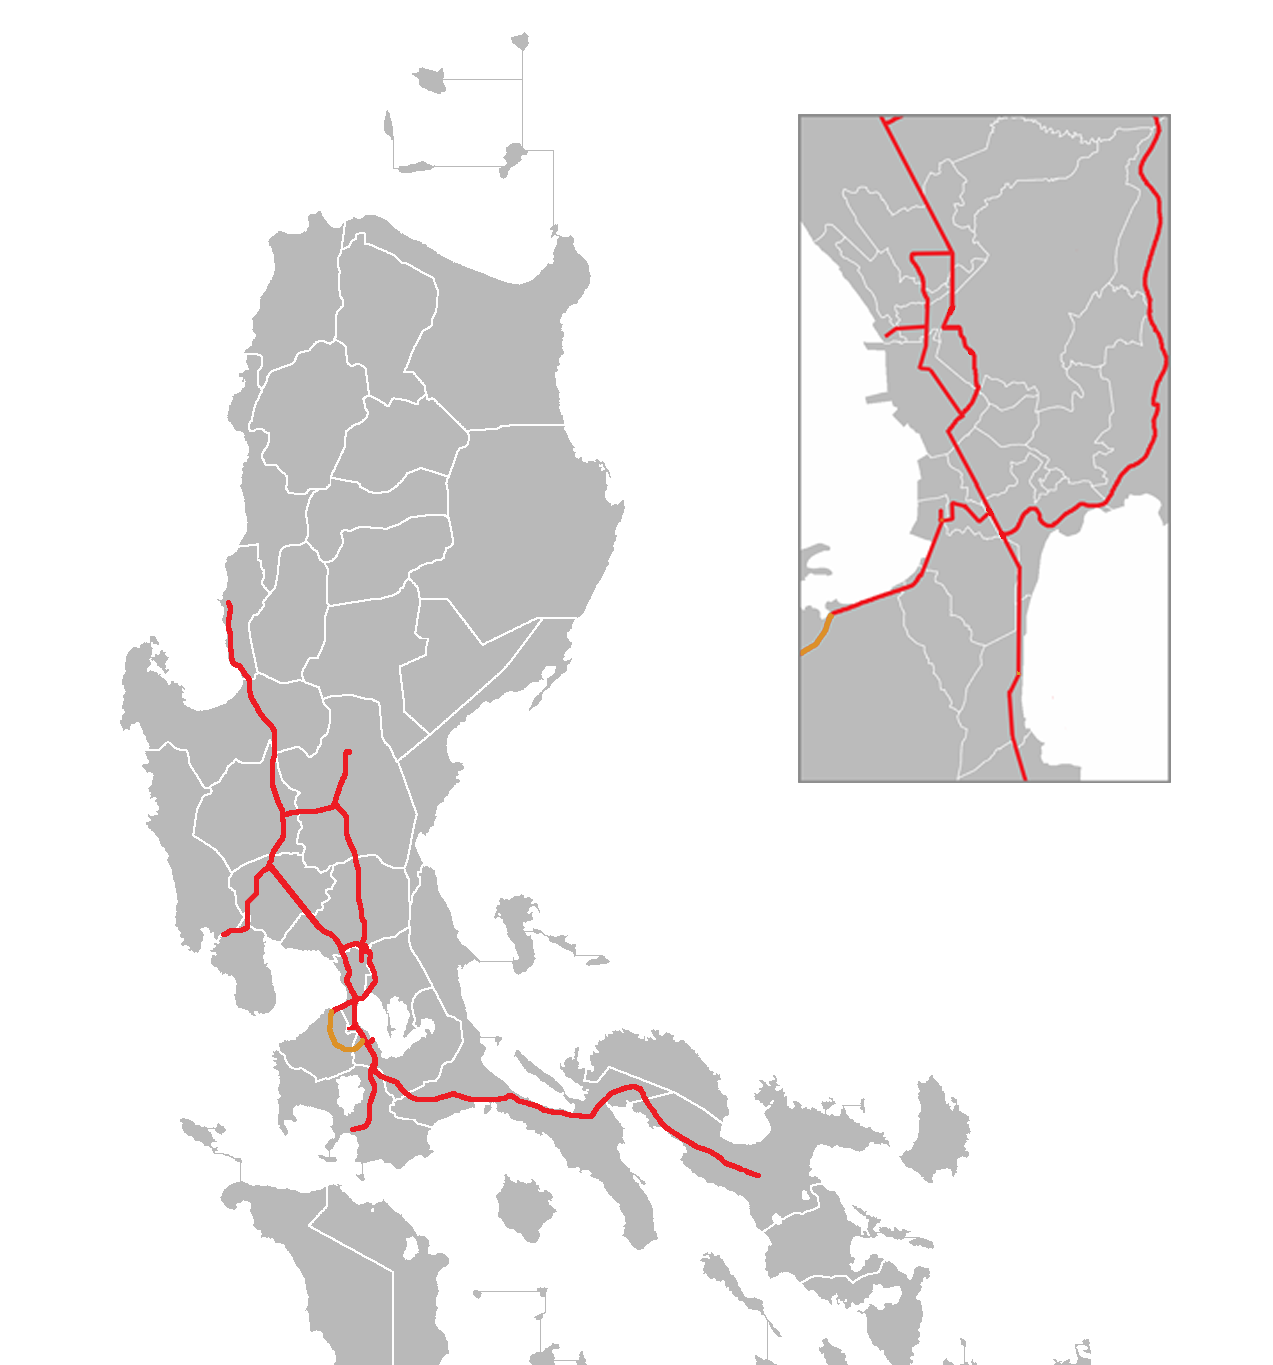 Cavite–Laguna Expressway - Wikipedia on honolulu us map, mexico us map, asia us map, best us map, el salvador us map, philippines us map, toledo us map, new york city us map, phoenix us map,